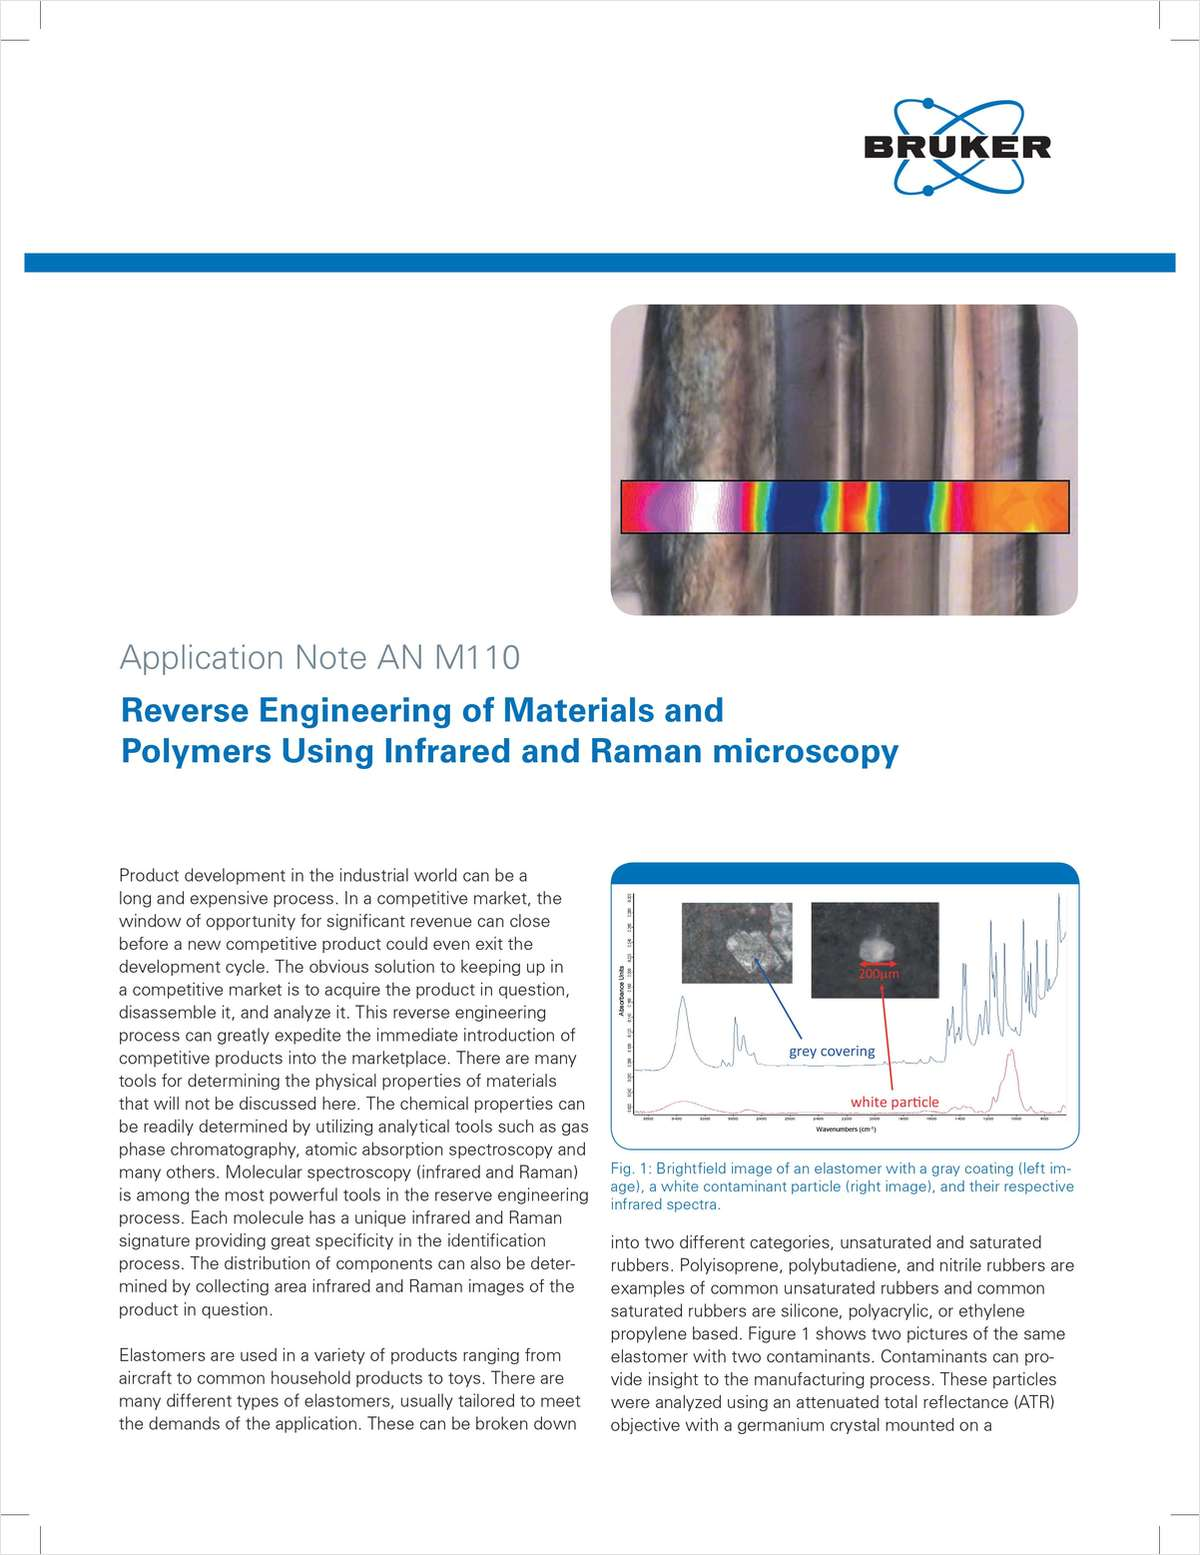 Reverse Engineering of Materials and Polymers Using Infrared and Raman Microscopy